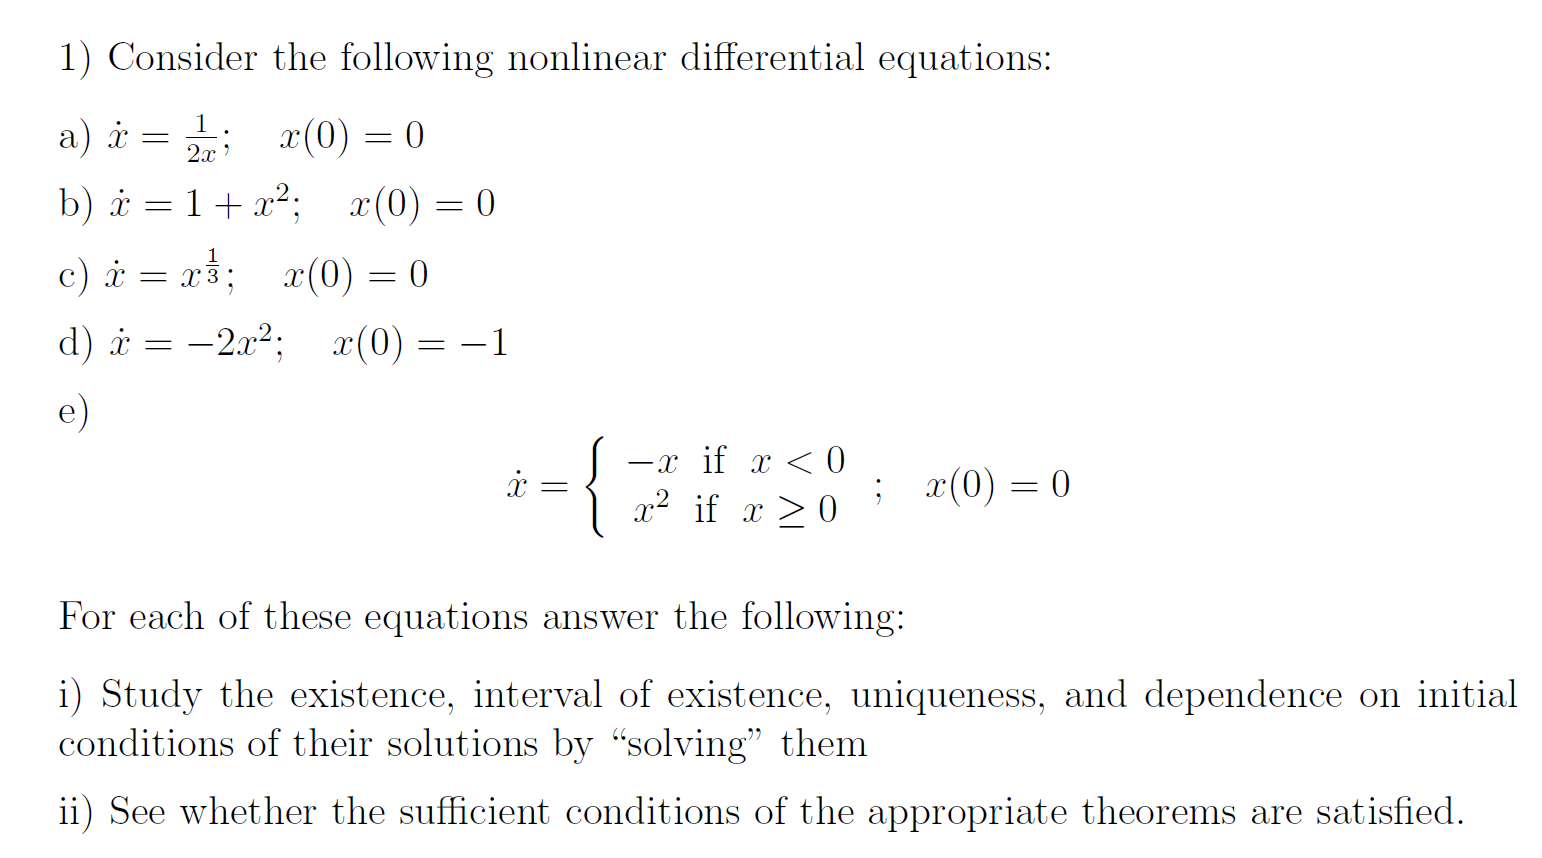 solved: consider the following nonlinear differential equa